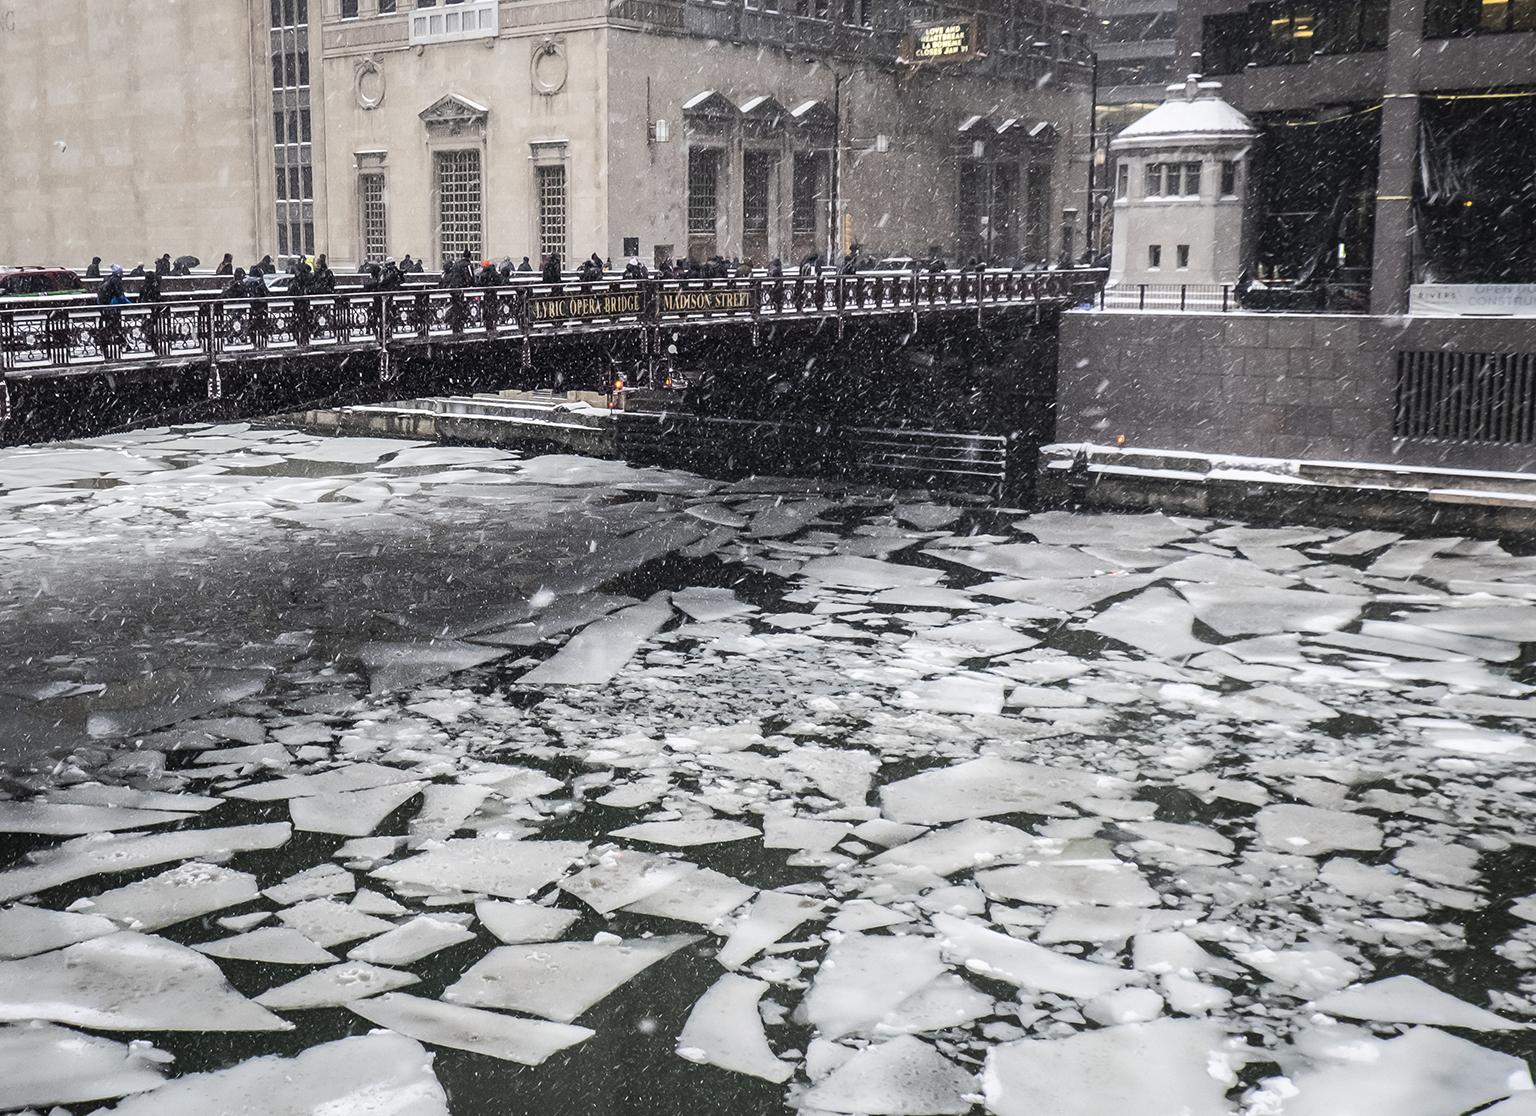 Pedestrians cross an icy Chicago River on Madison Street near the Civic Opera House on Monday, Jan. 28, 2019. (Rich Hein / Chicago Sun-Times via AP)